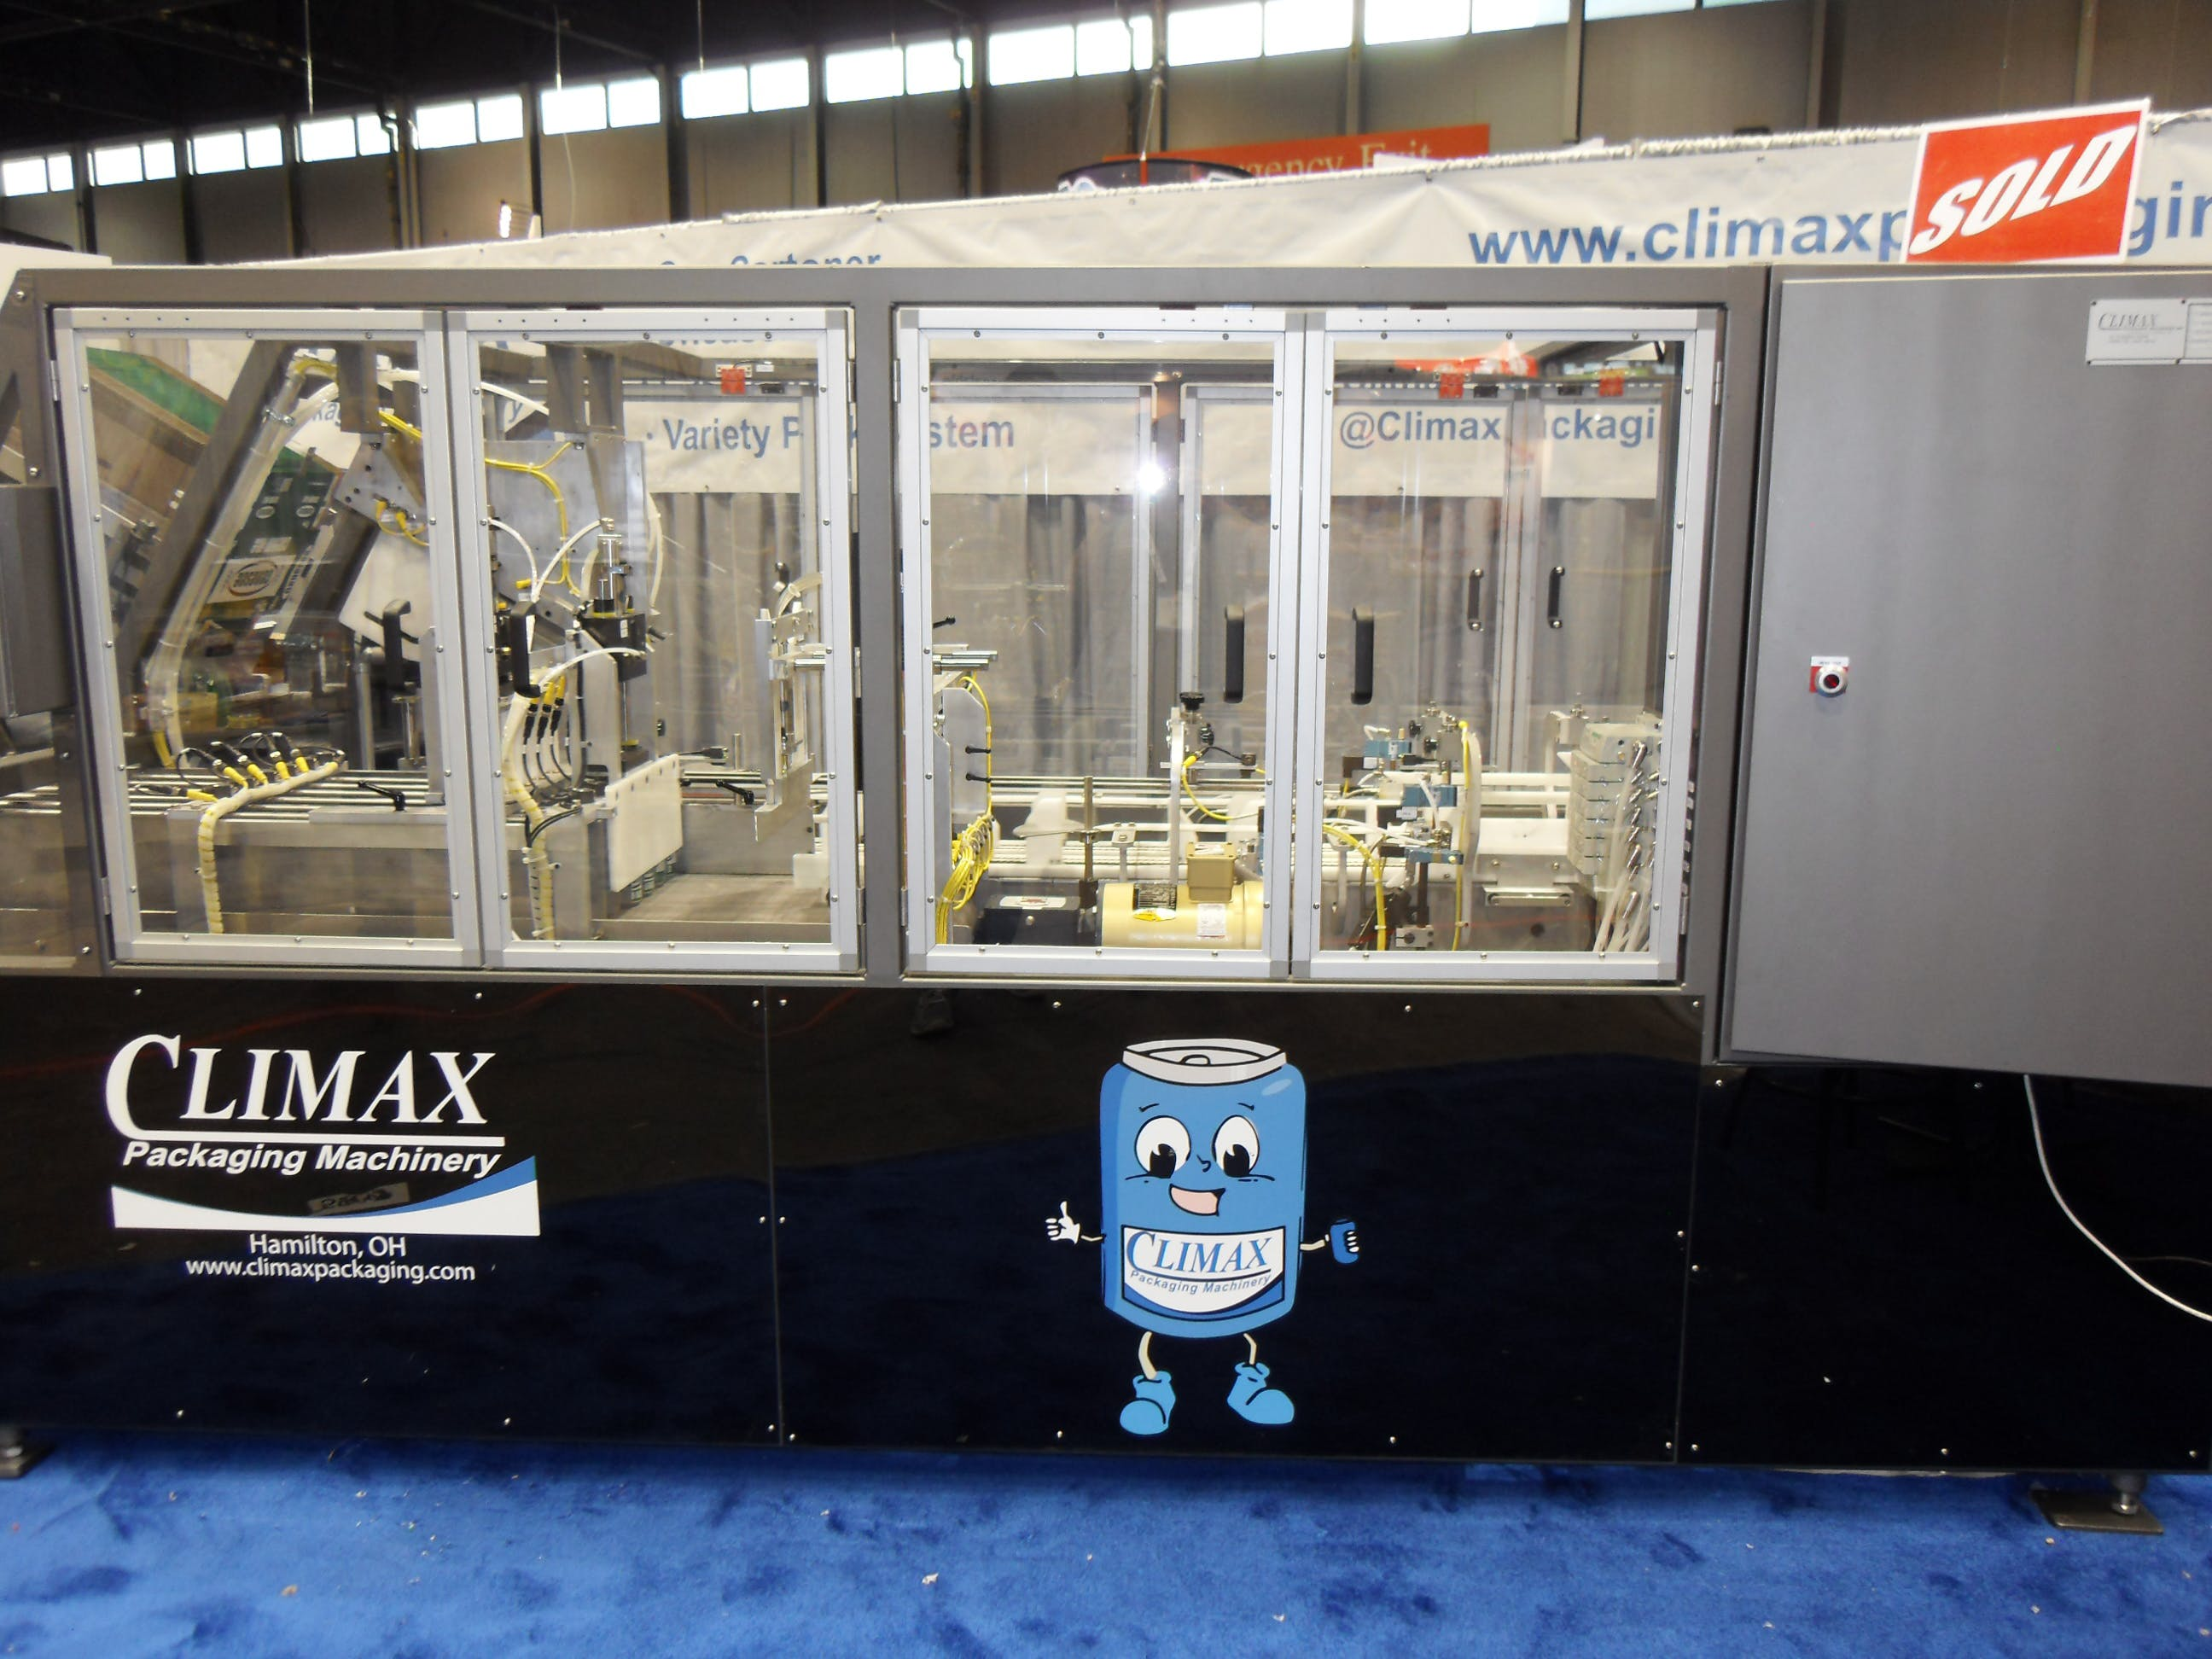 Climax Packaging Machinery CanDo 360 - sold by Climax Packaging Machinery